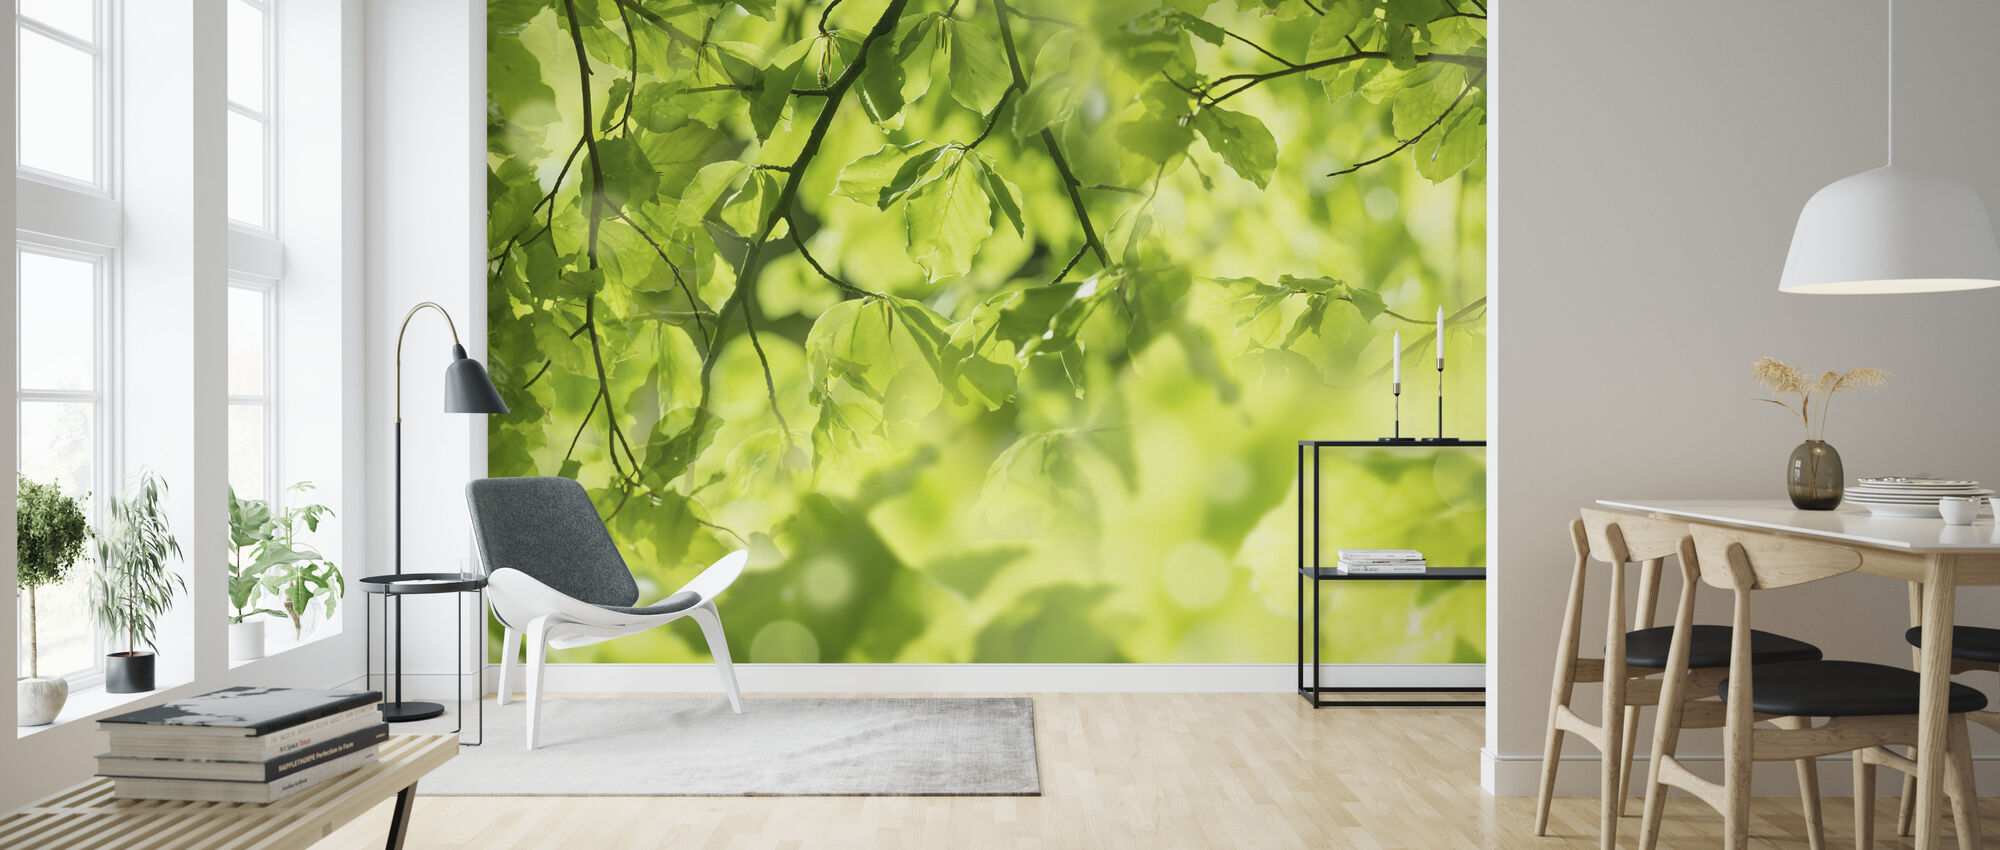 Fresh Leaves and Sun Rays - Wallpaper - Living Room